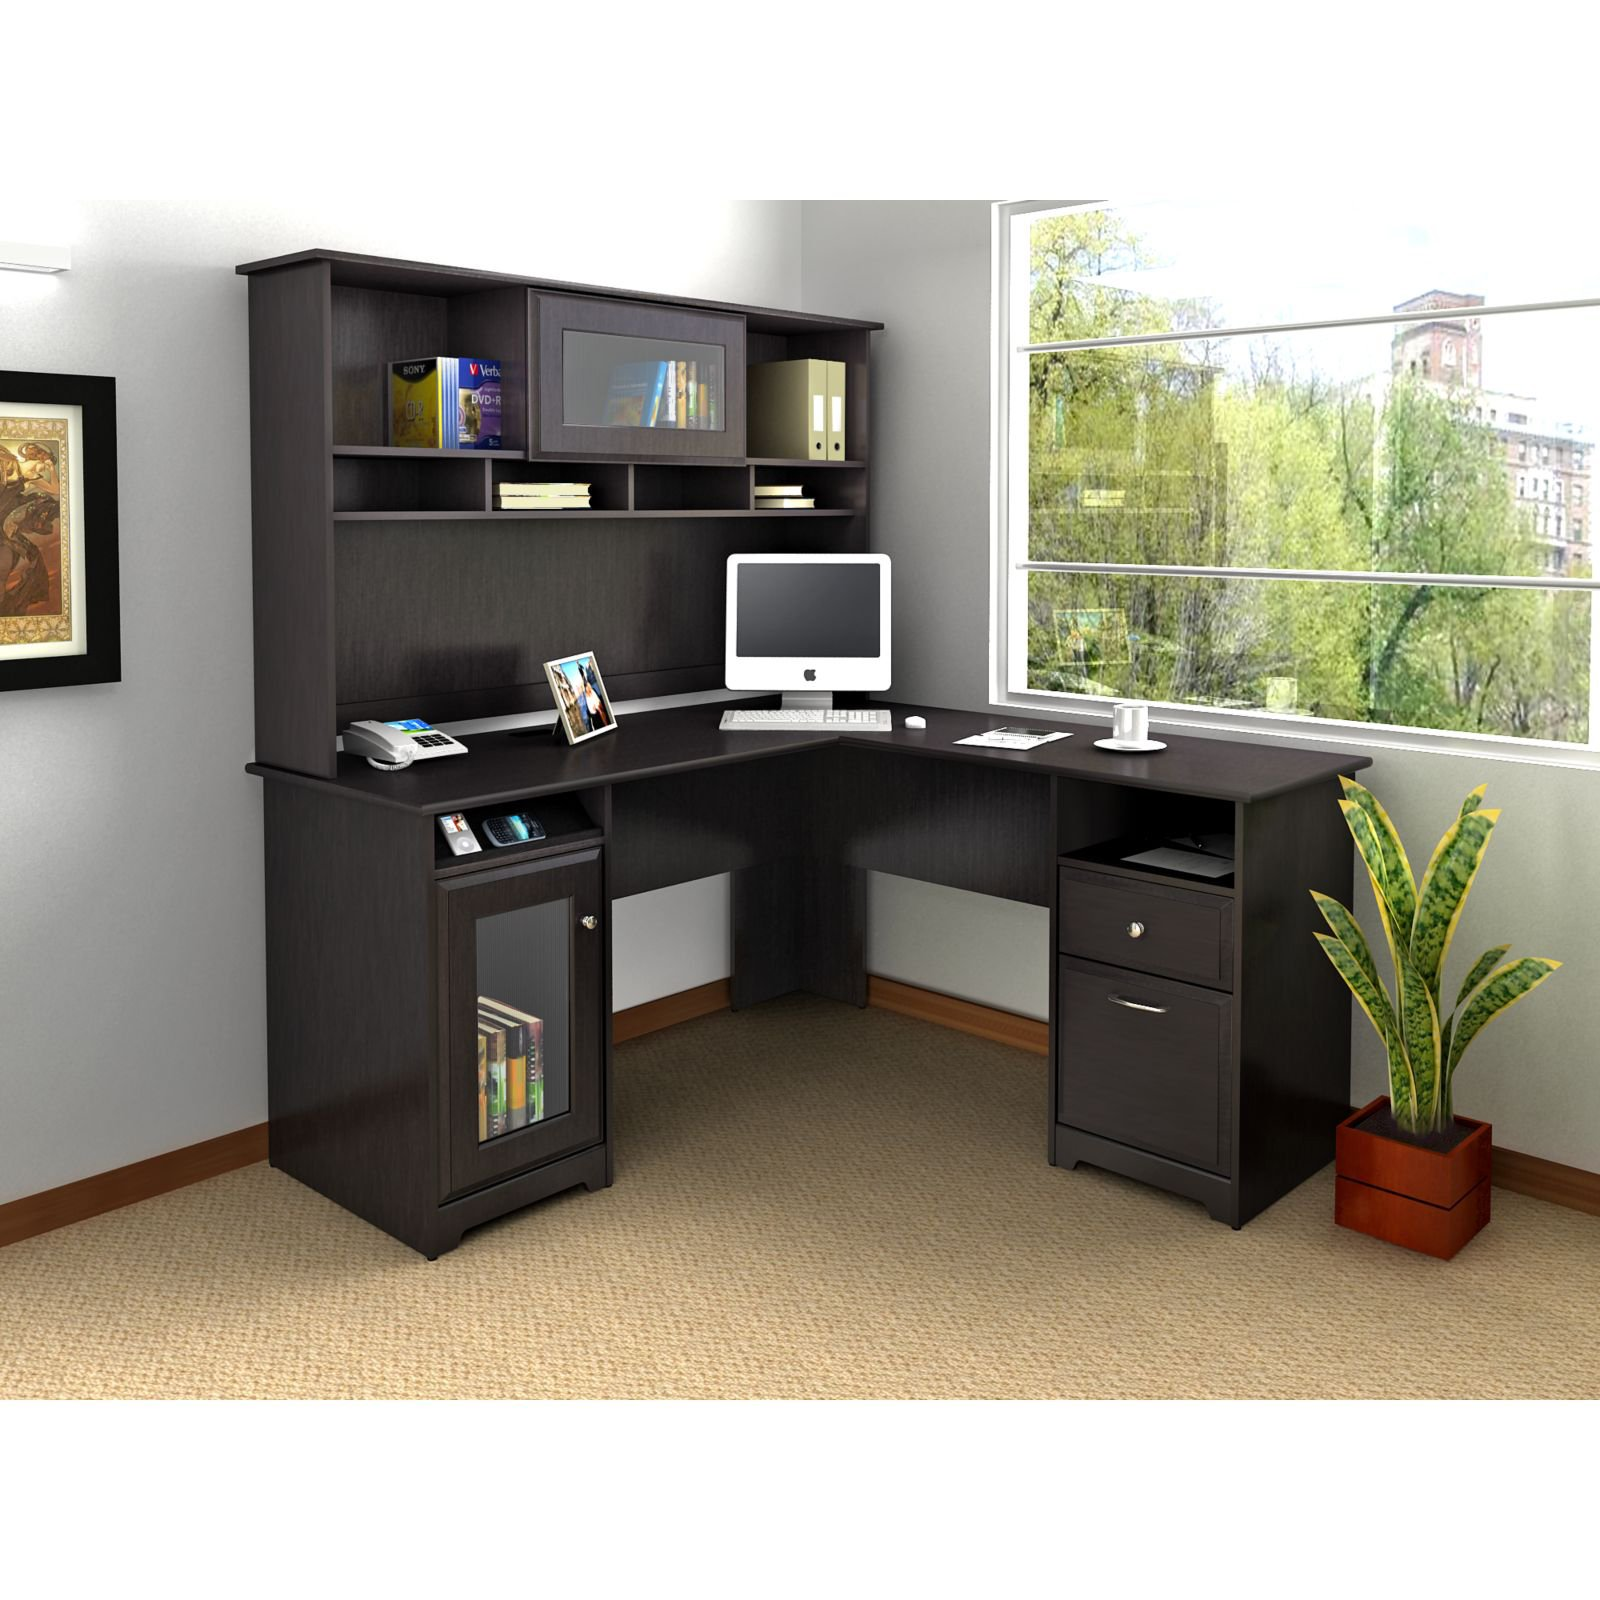 l shaped desk bush cabot l-shaped desk - desks at hayneedle RGQFUIV